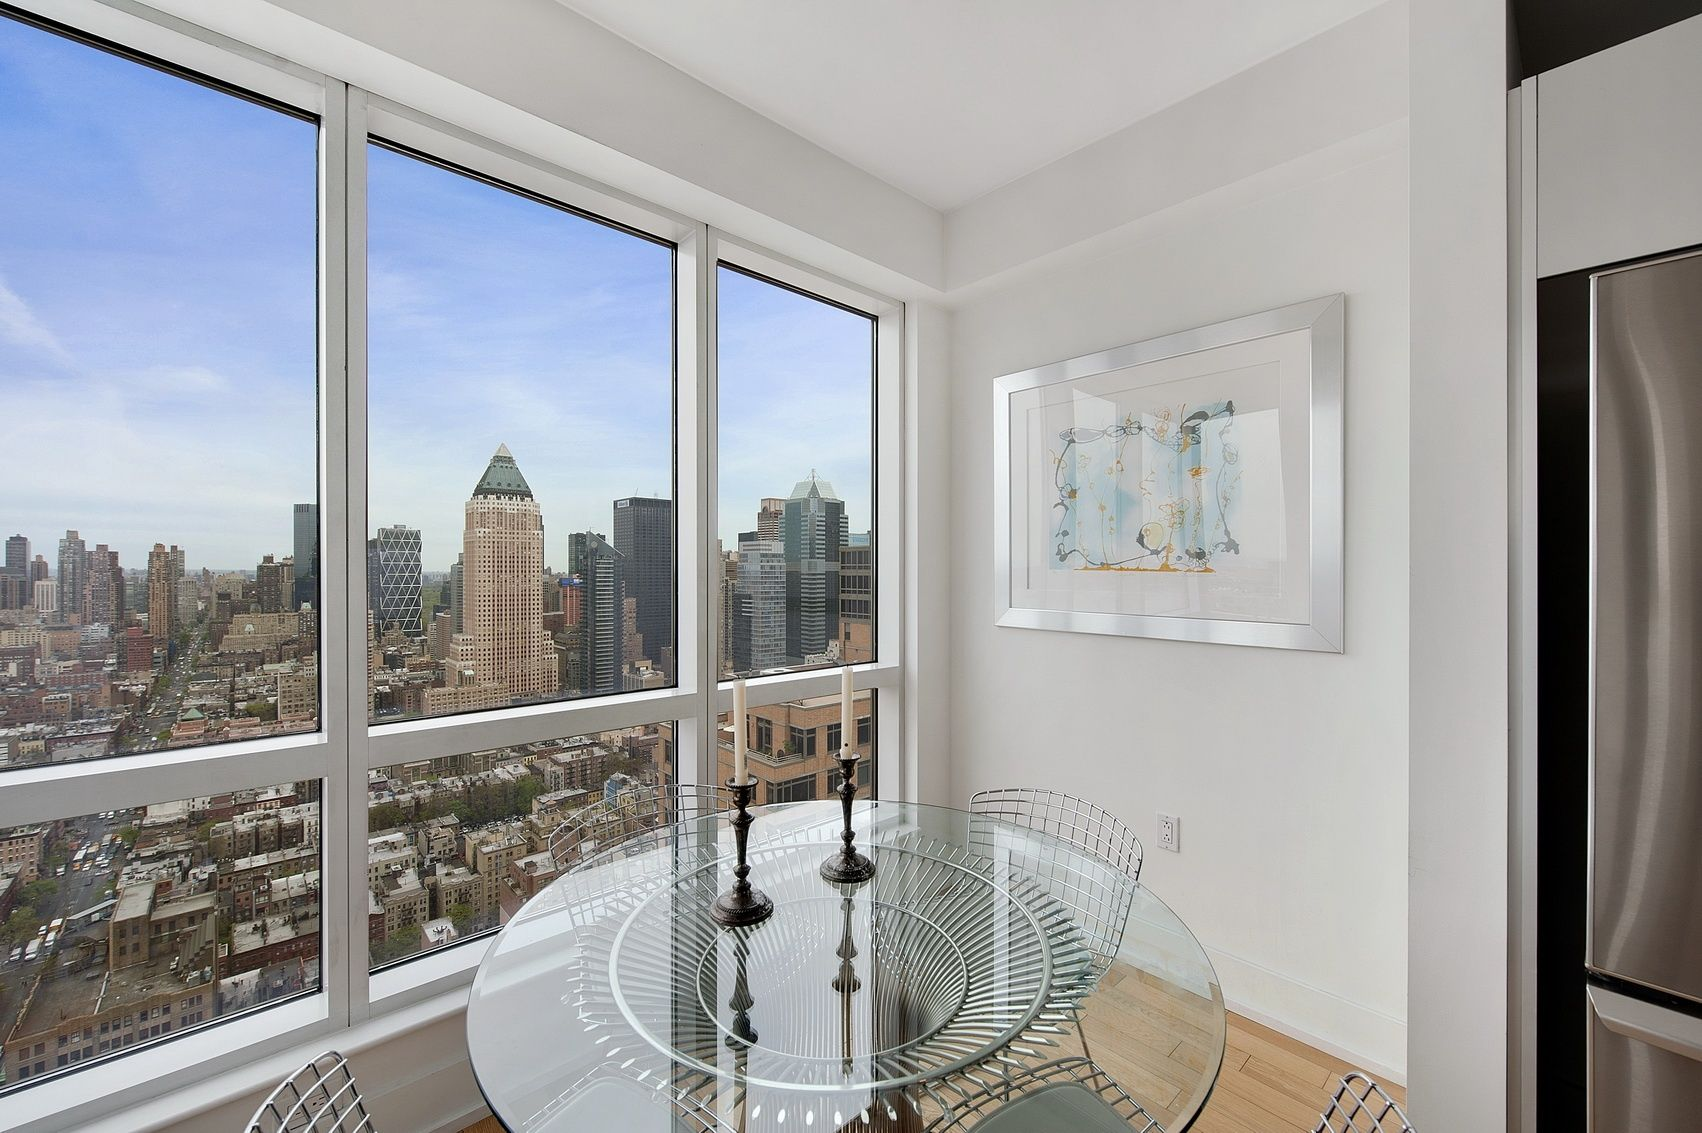 New York Apartments Midtown West 2 Bedroom Apartment For Rent 1 Bedroom Apartment New York Apartments Apartments For Rent